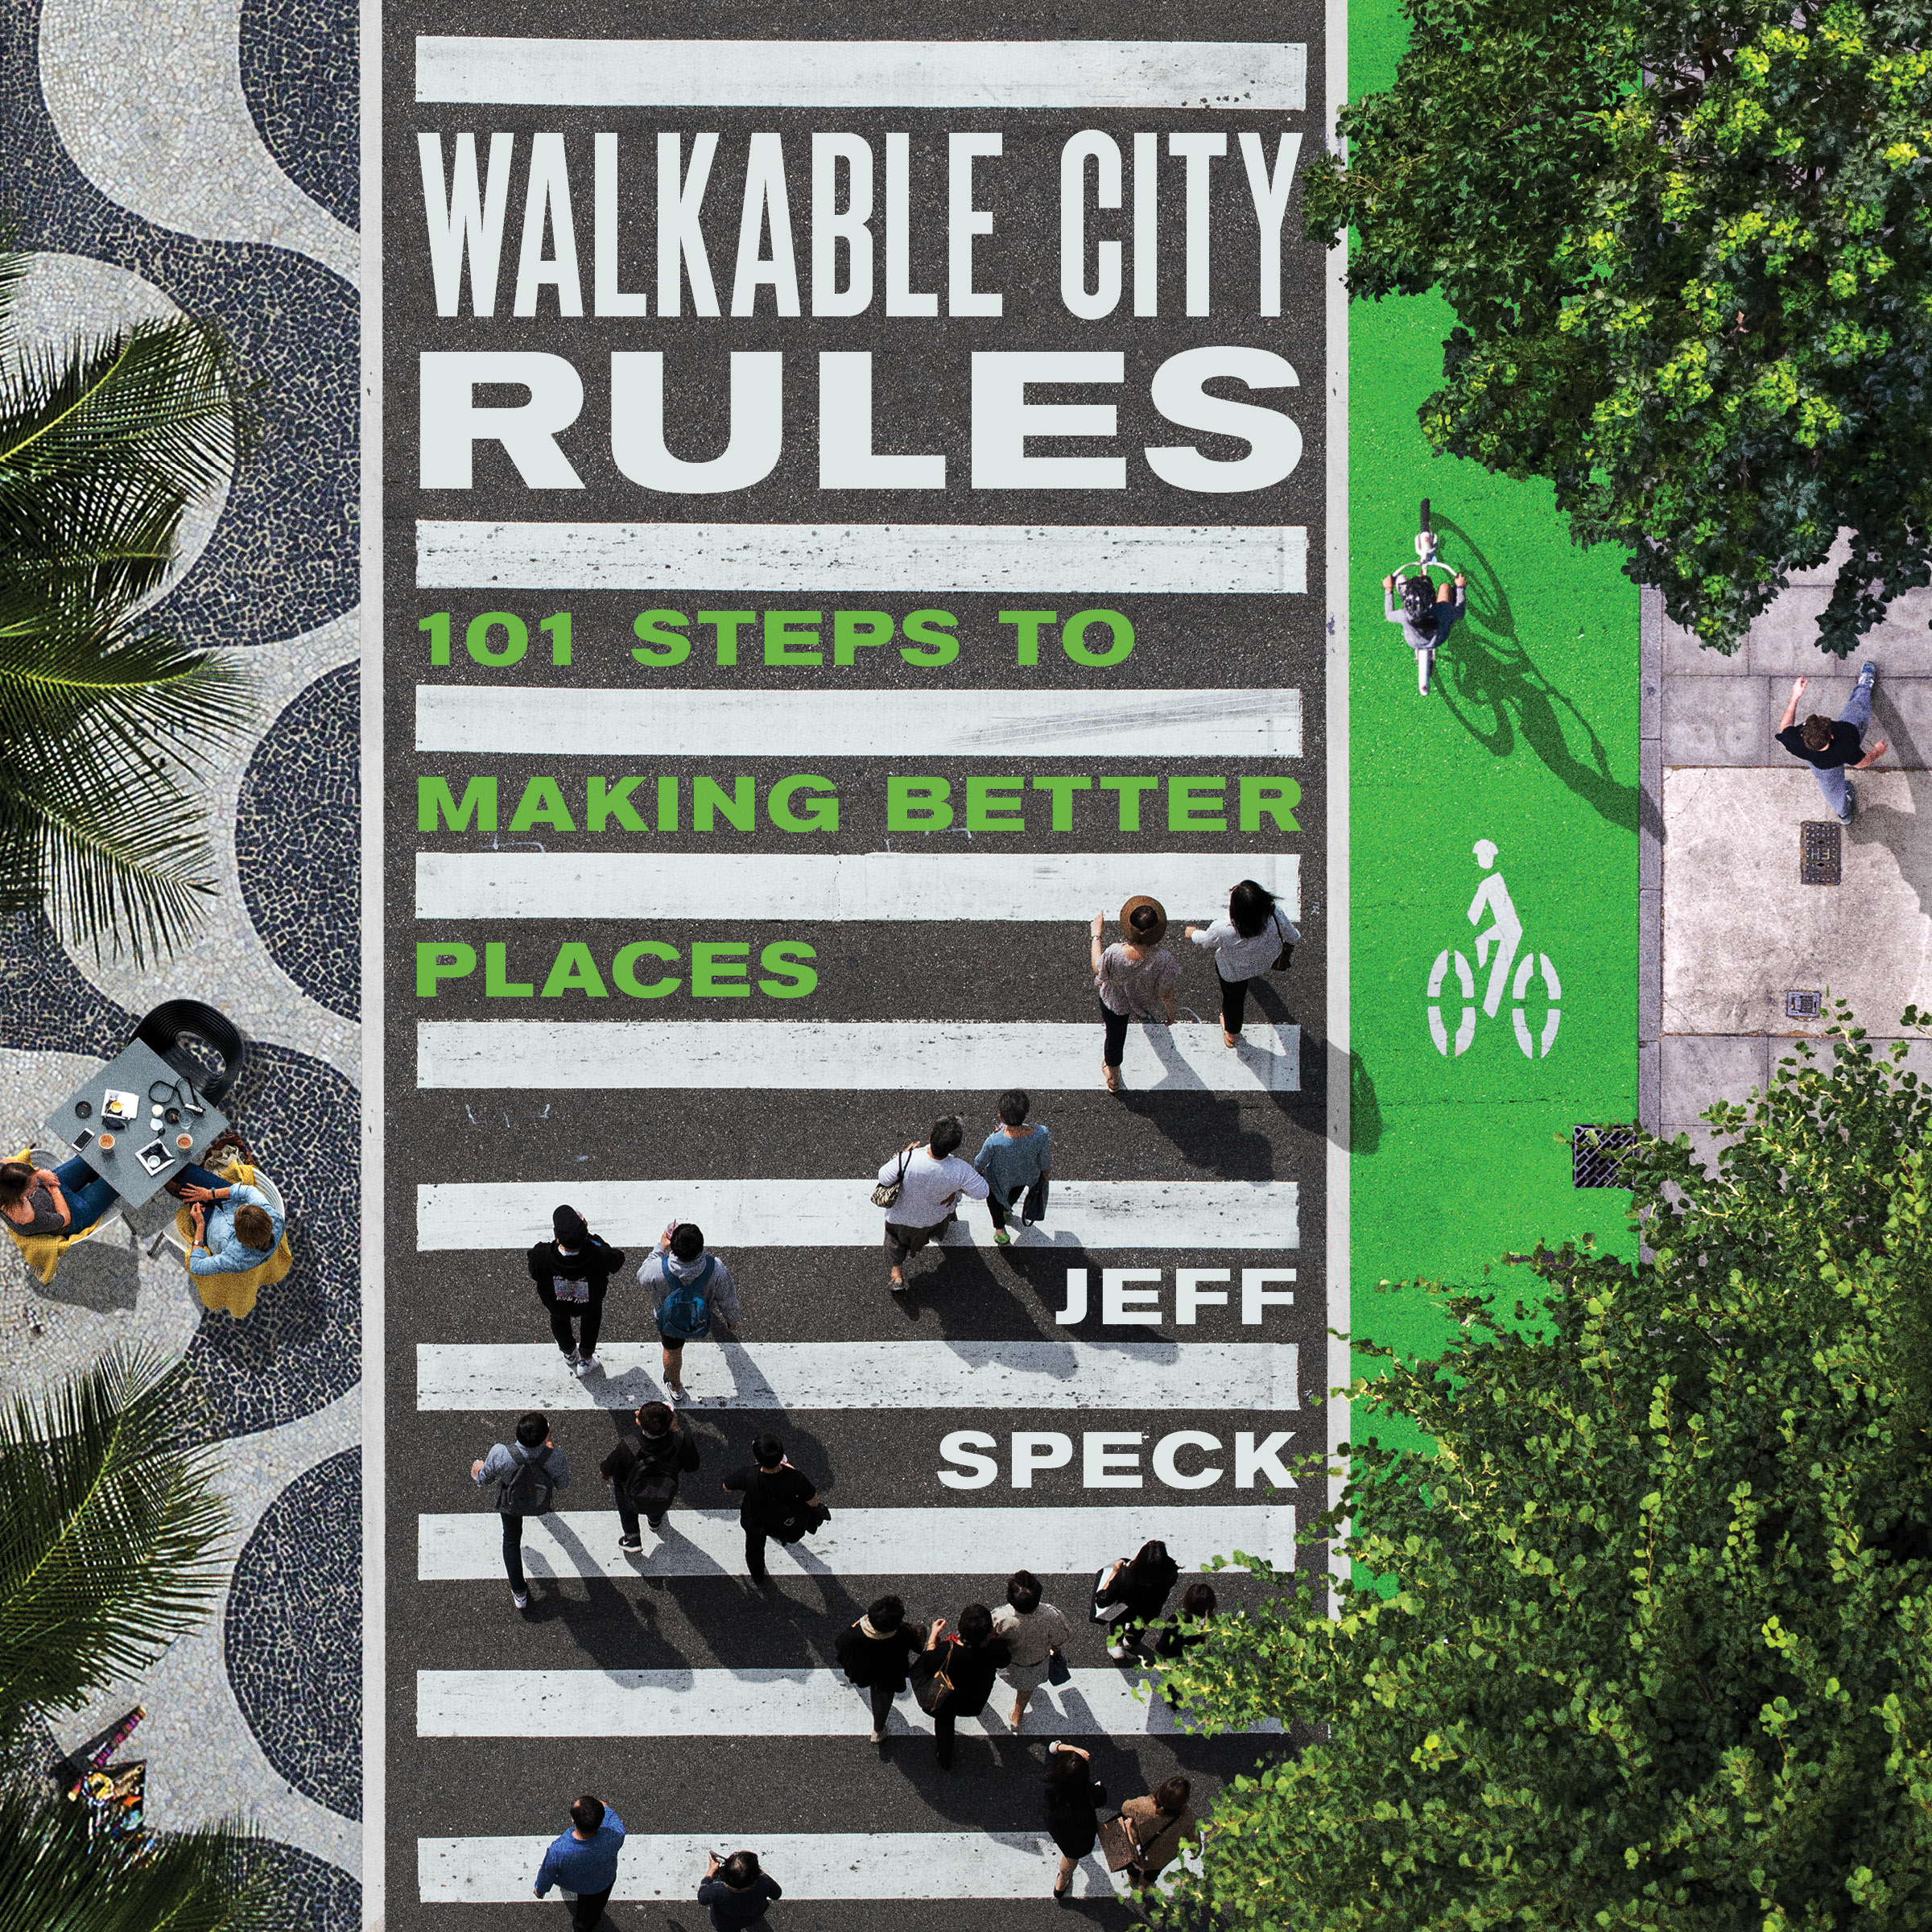 Walkable City Rules, the upcoming book from Jeff Speck. Image: Island Press